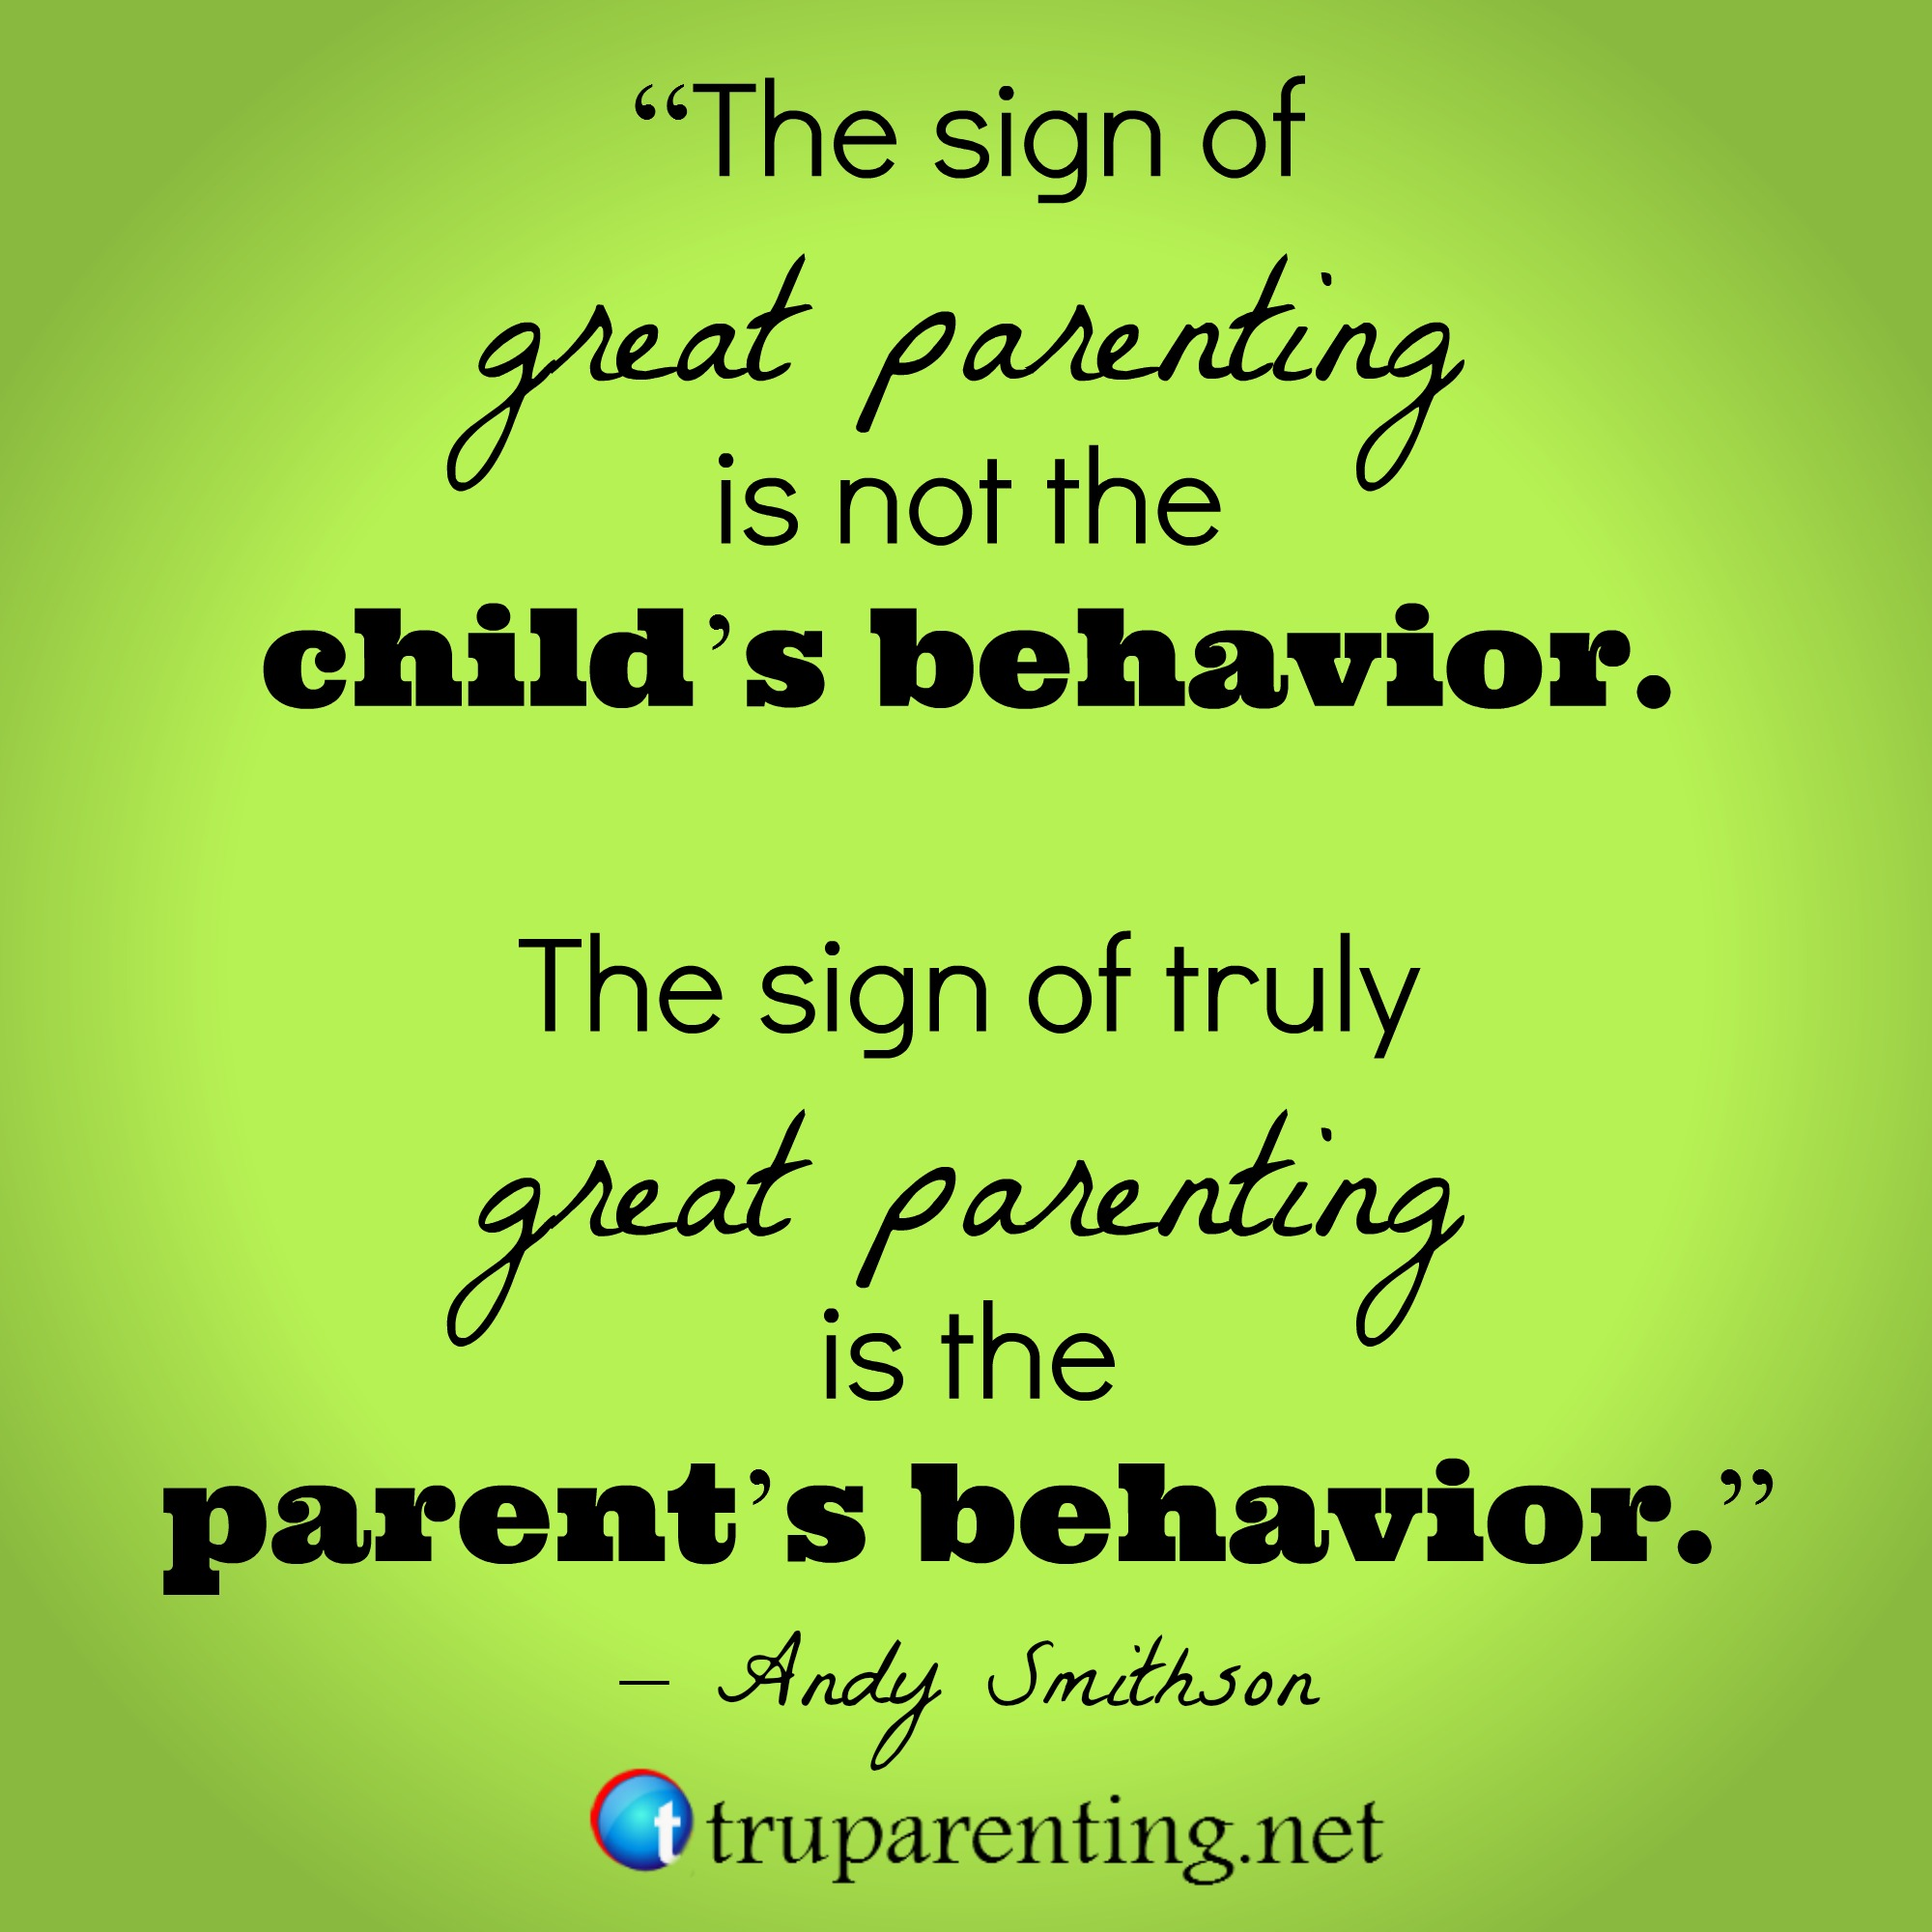 Quotes About Teaching Children 30 Inspiring Parenting Quotes That Teach Tru Parenting Principles